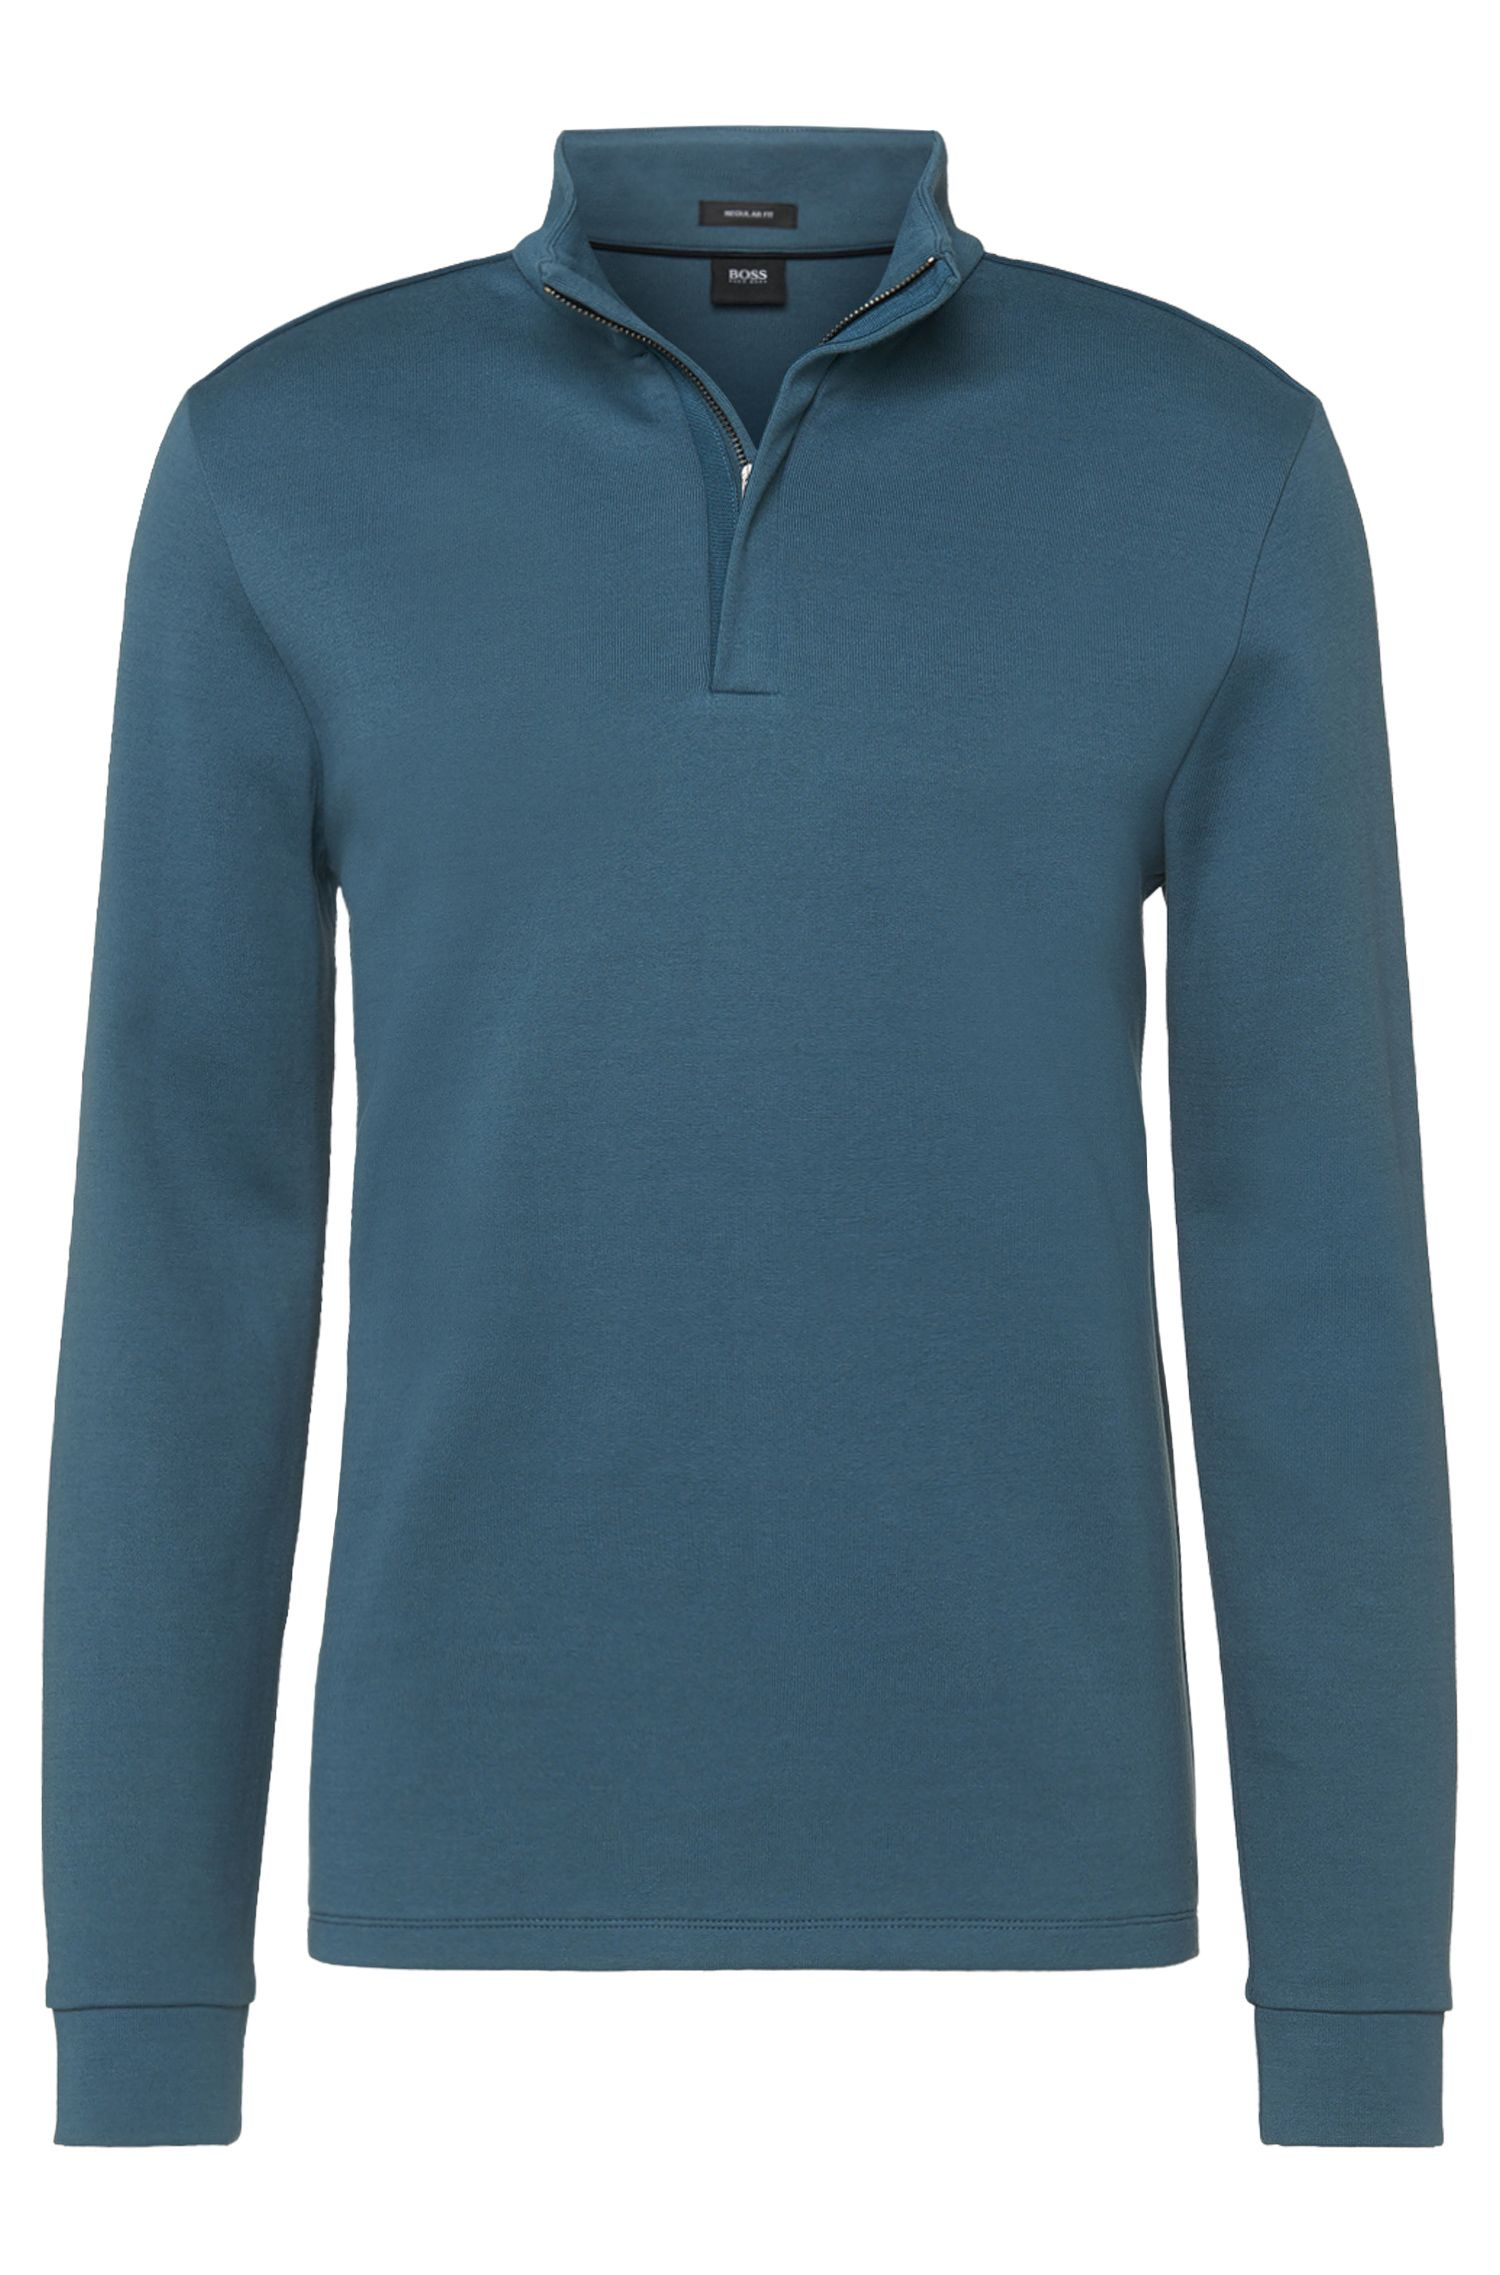 Unifarbenes Regular-Fit Sweatshirt aus Baumwoll-Mix: 'Sidney 04'